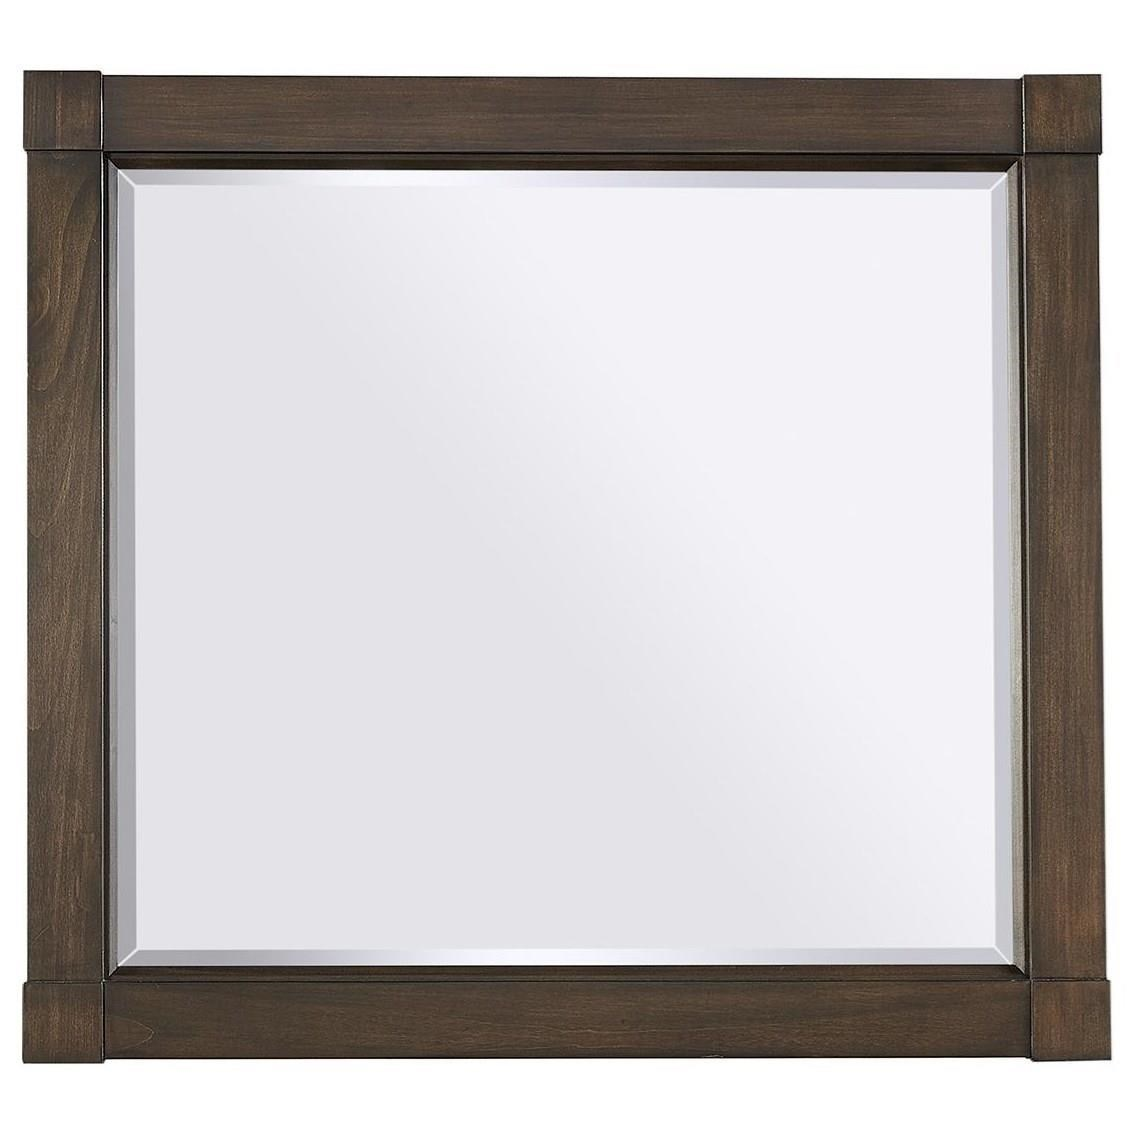 Easton Landscape Mirror  by Aspenhome at Darvin Furniture